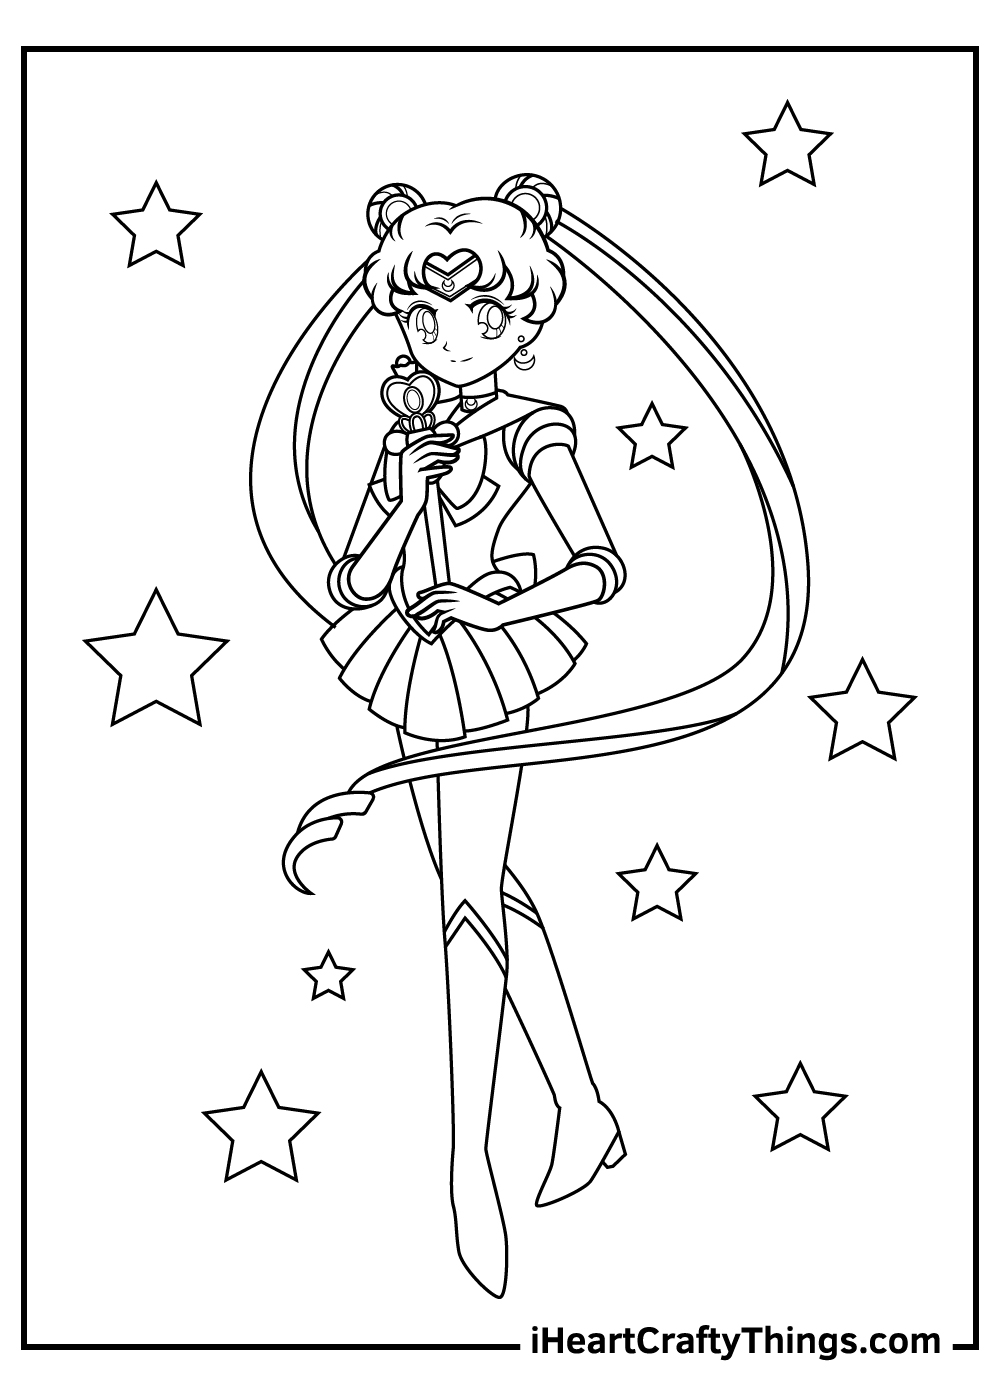 Printable Sailor Moon Coloring Pages Updated 18